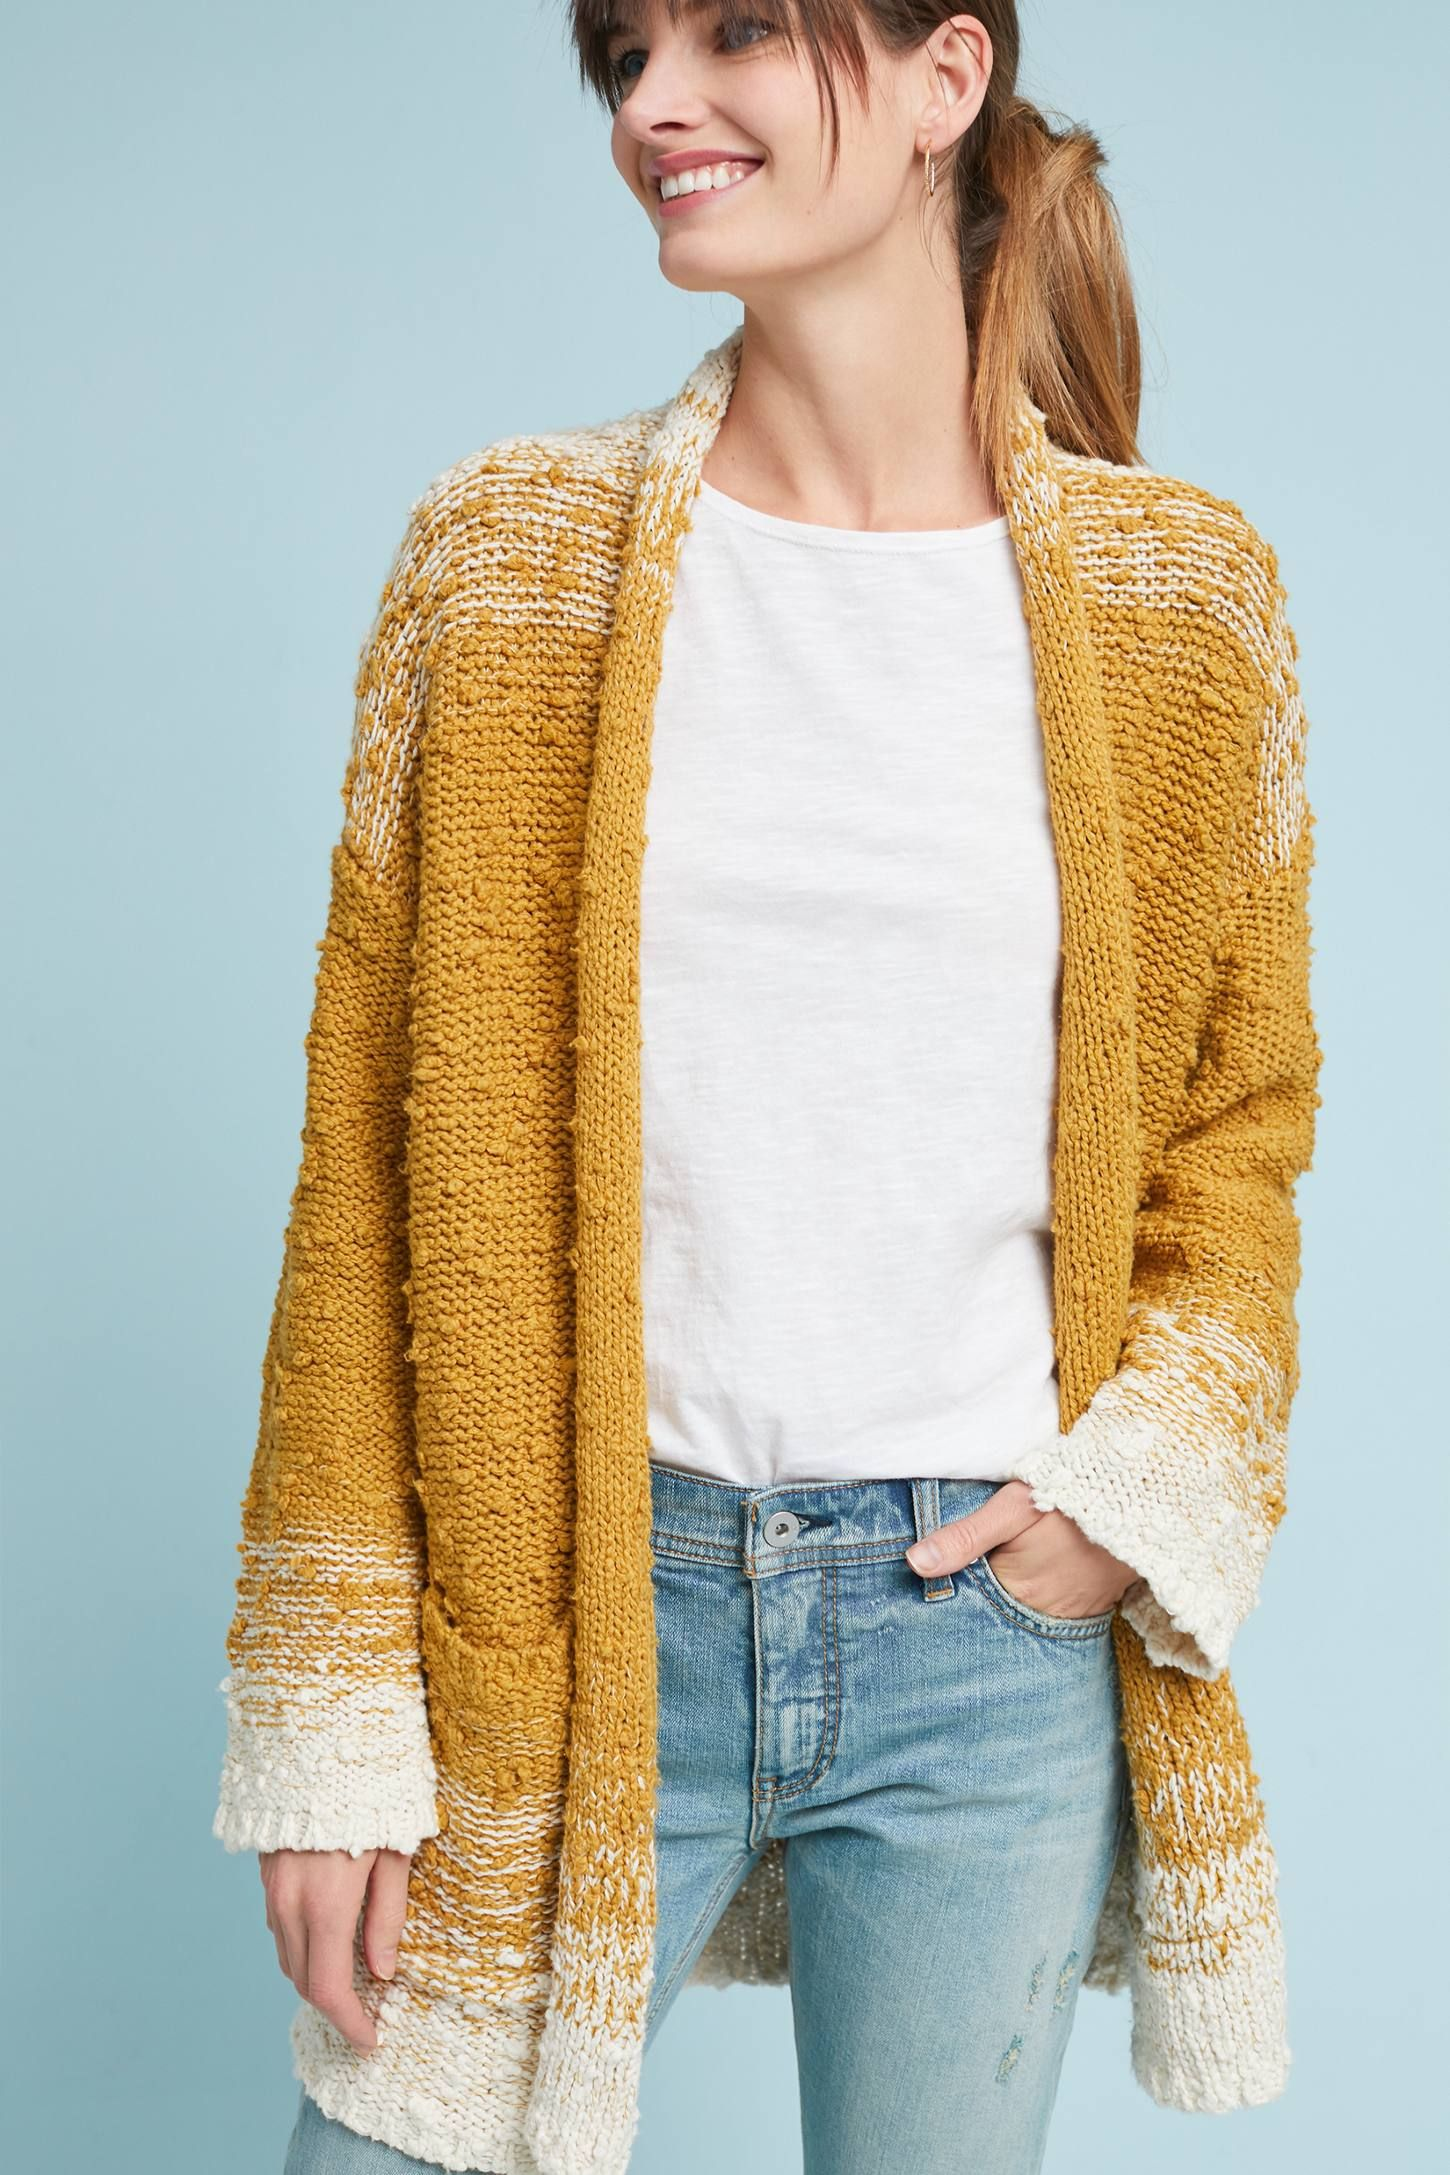 a5747c9259b Shop the Space-Dyed Cardigan and more Anthropologie at Anthropologie today. Read  customer reviews